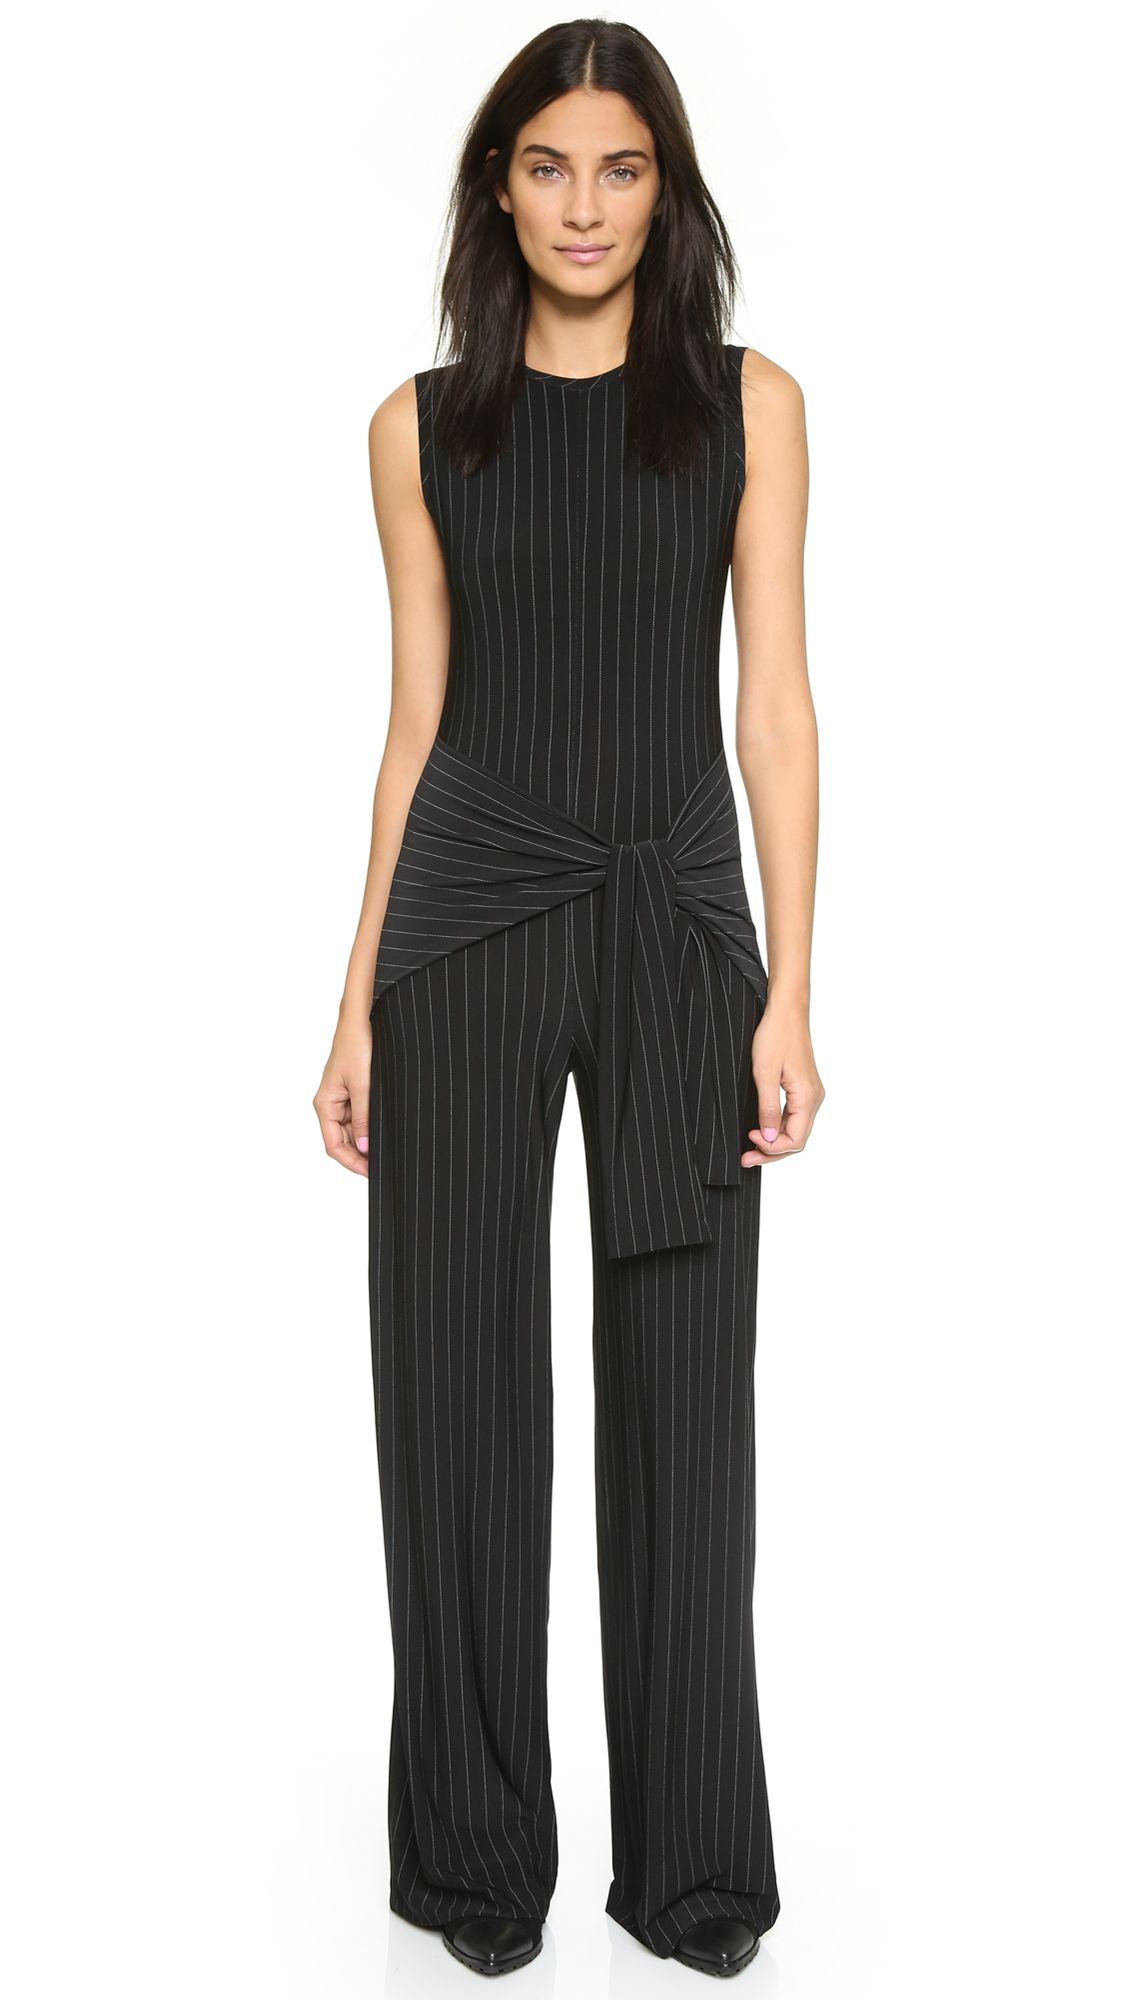 259635d7b5 15 Jumpsuits That Make Getting Dressed a No-Brainer